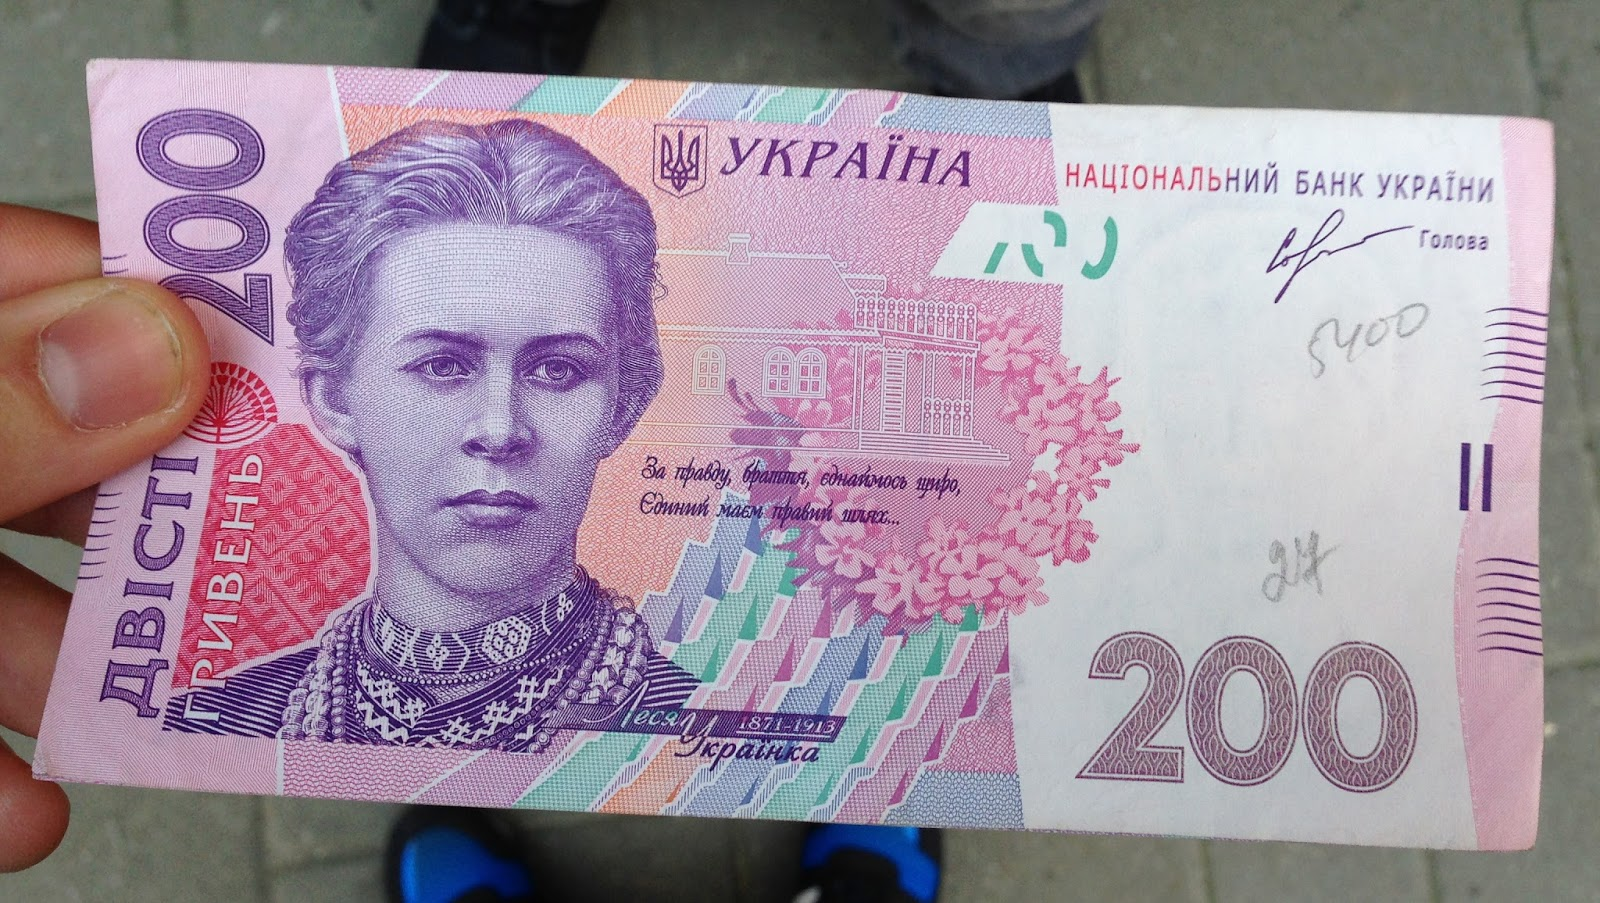 Hryvnia, unkrianian, money, note, 200, pink, eastern Europe